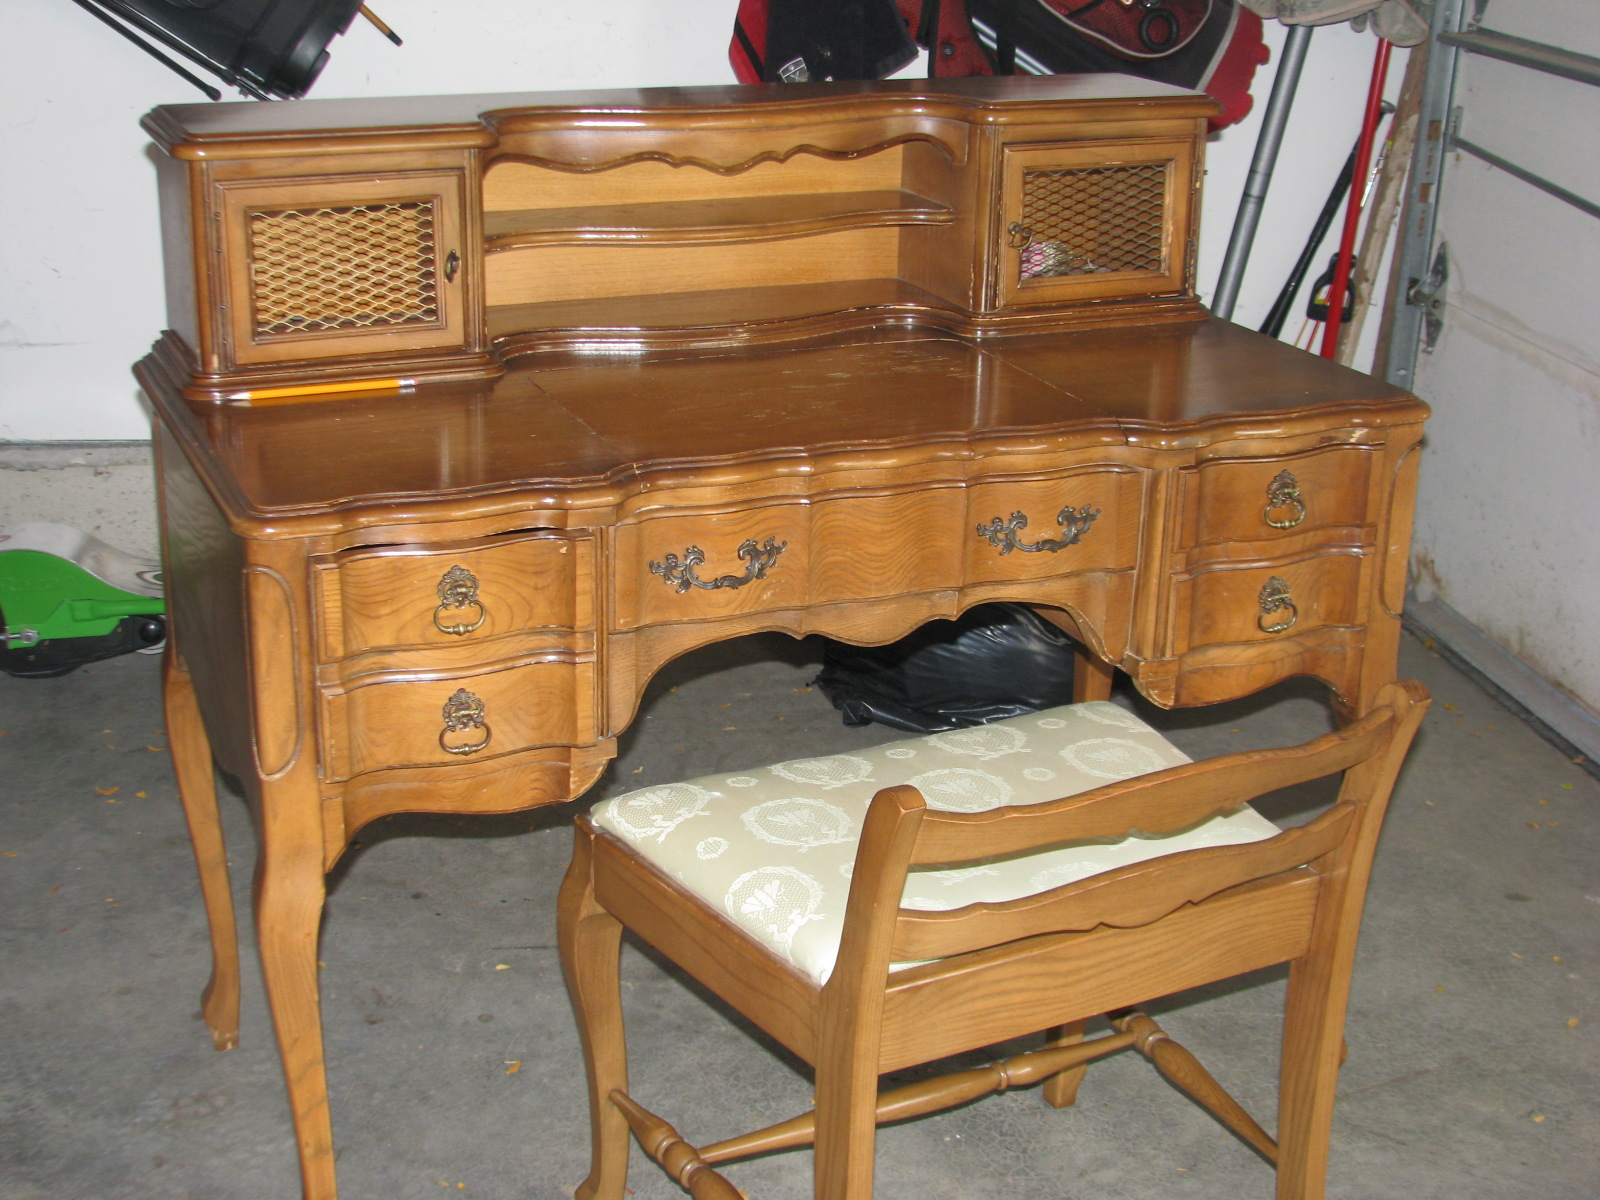 shelves furniture century computer roth allen couch for out sale desk pull tv patio and craigslist console mid dresser